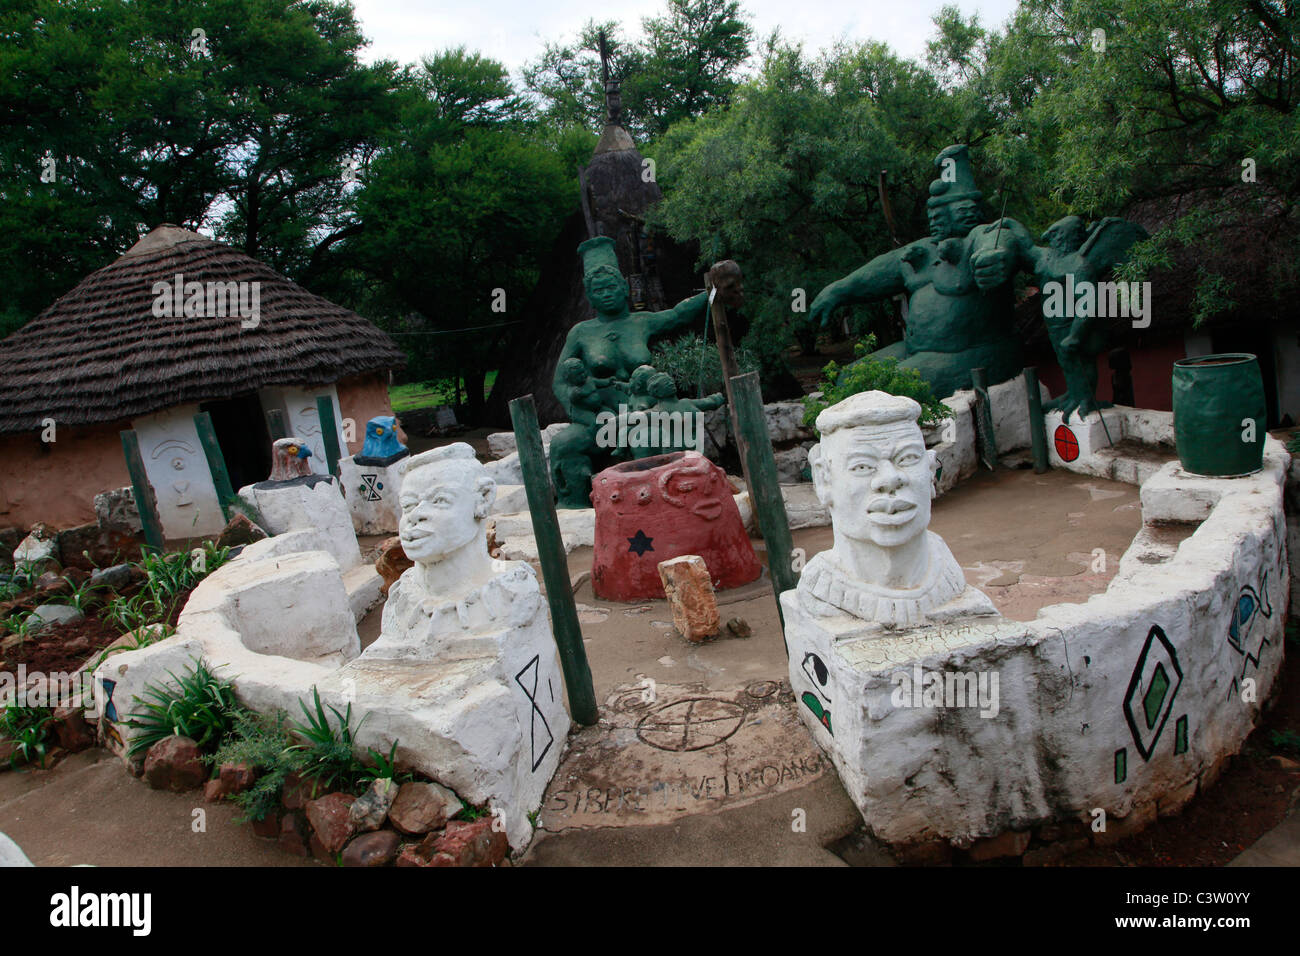 The Credo Mutwa cultural village. Soweto, South Africa. Stock Photo